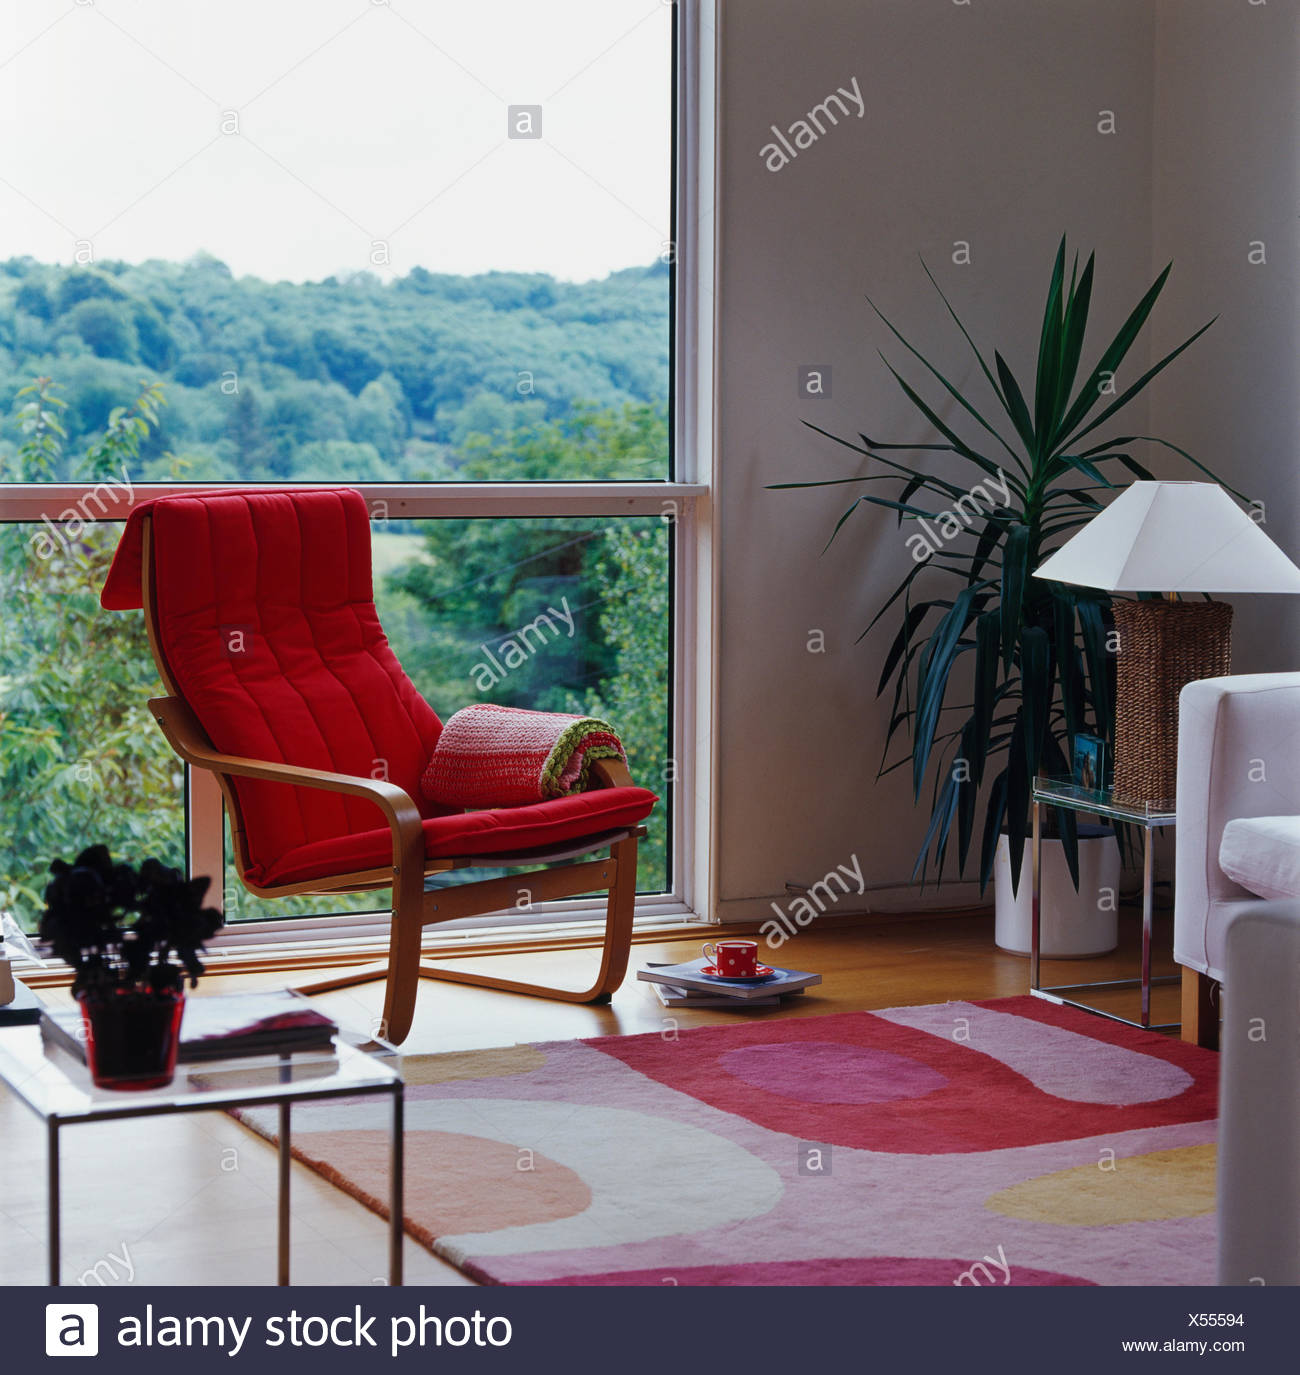 Modern Countryside Living Room Stock Photos & Modern